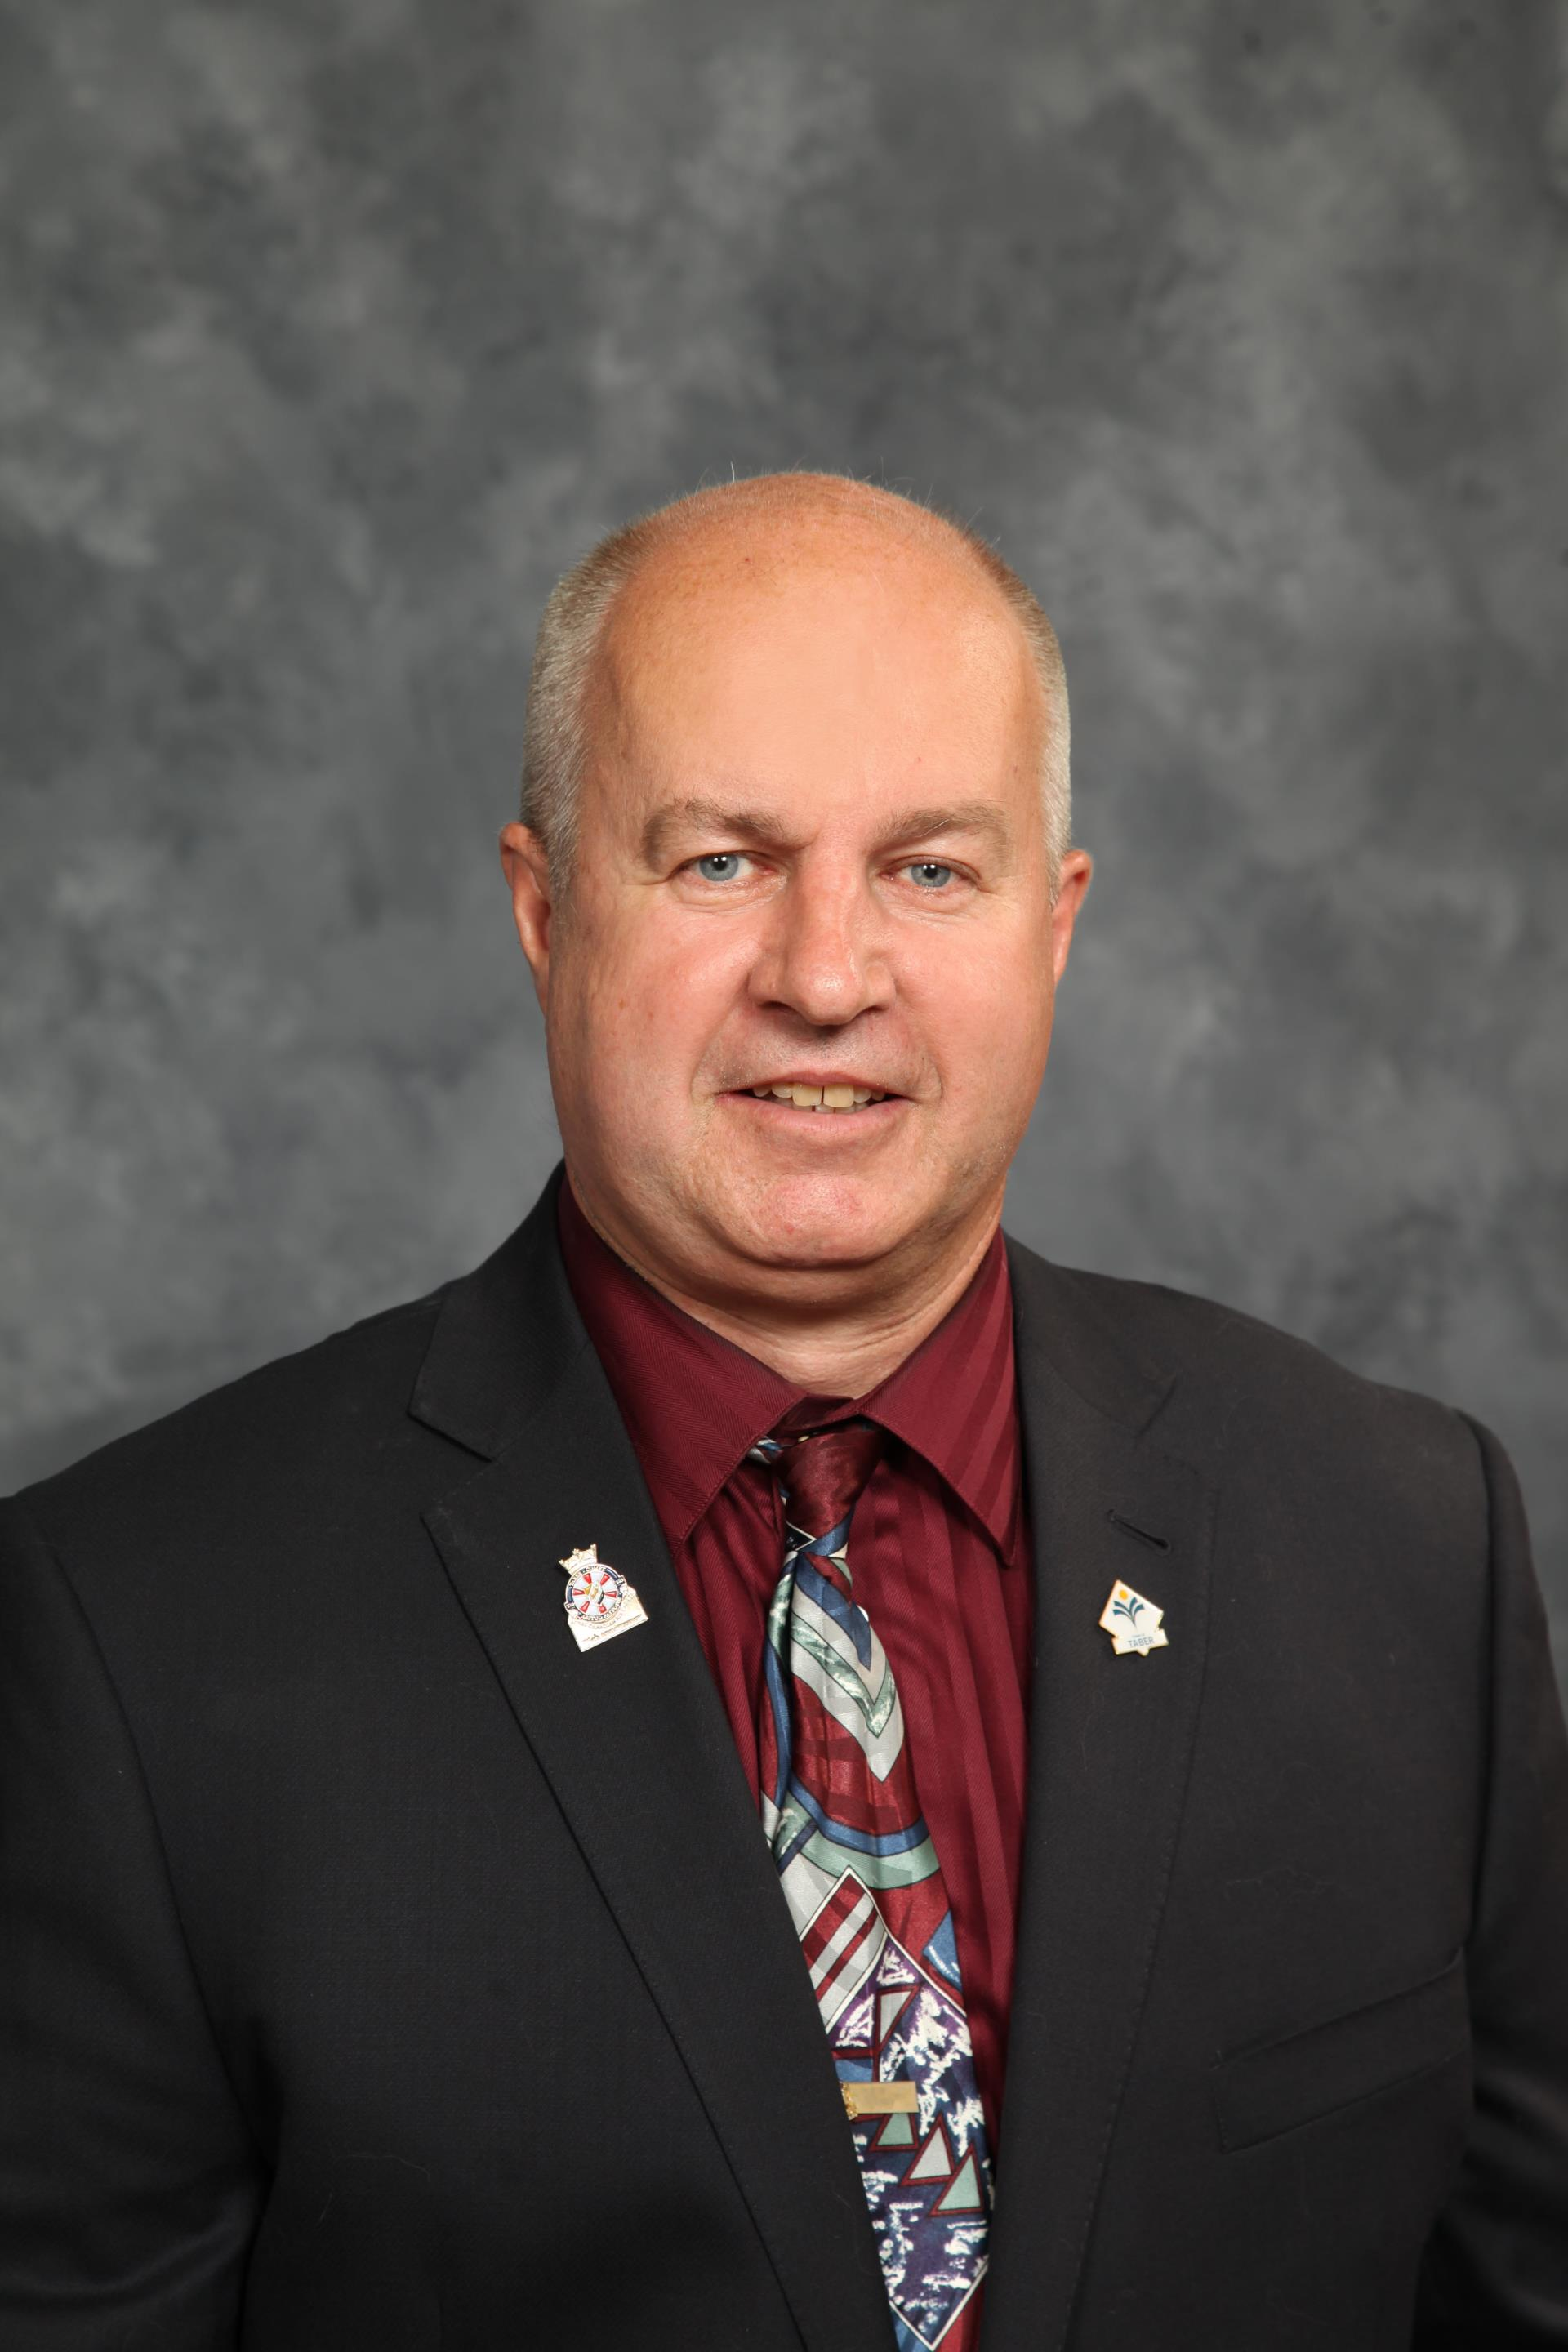 Mayor Andrew Prokop